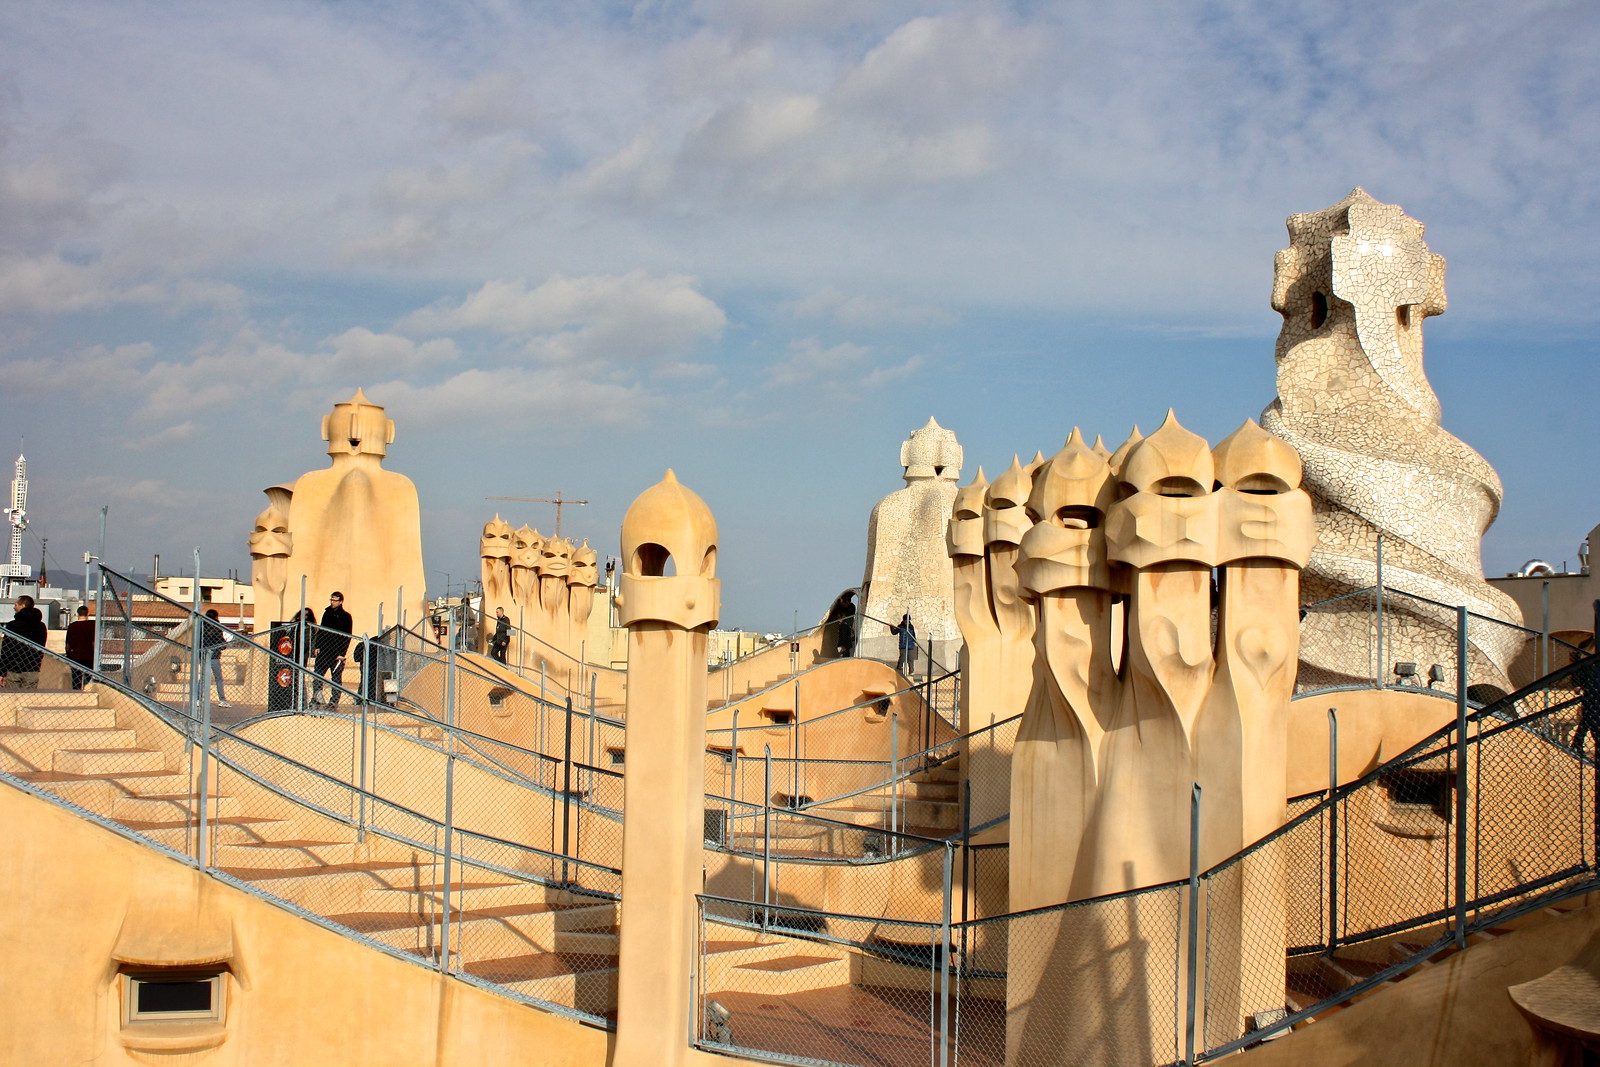 Casa Milà / La Pedrera by Antoni Gaudí in Barcelona, Spain